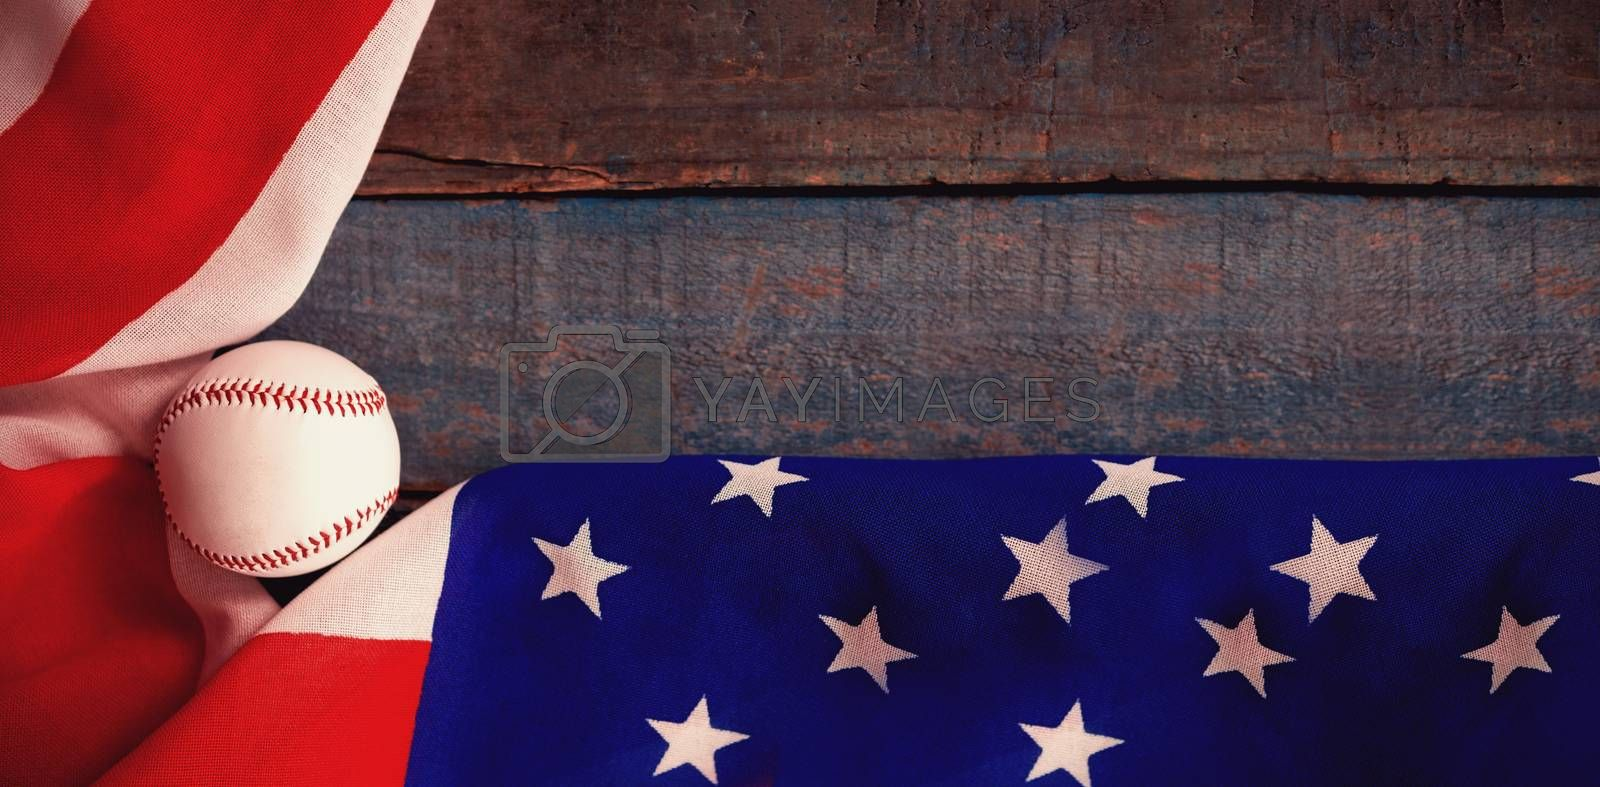 Baseball and American flag on wooden table by Wavebreakmedia